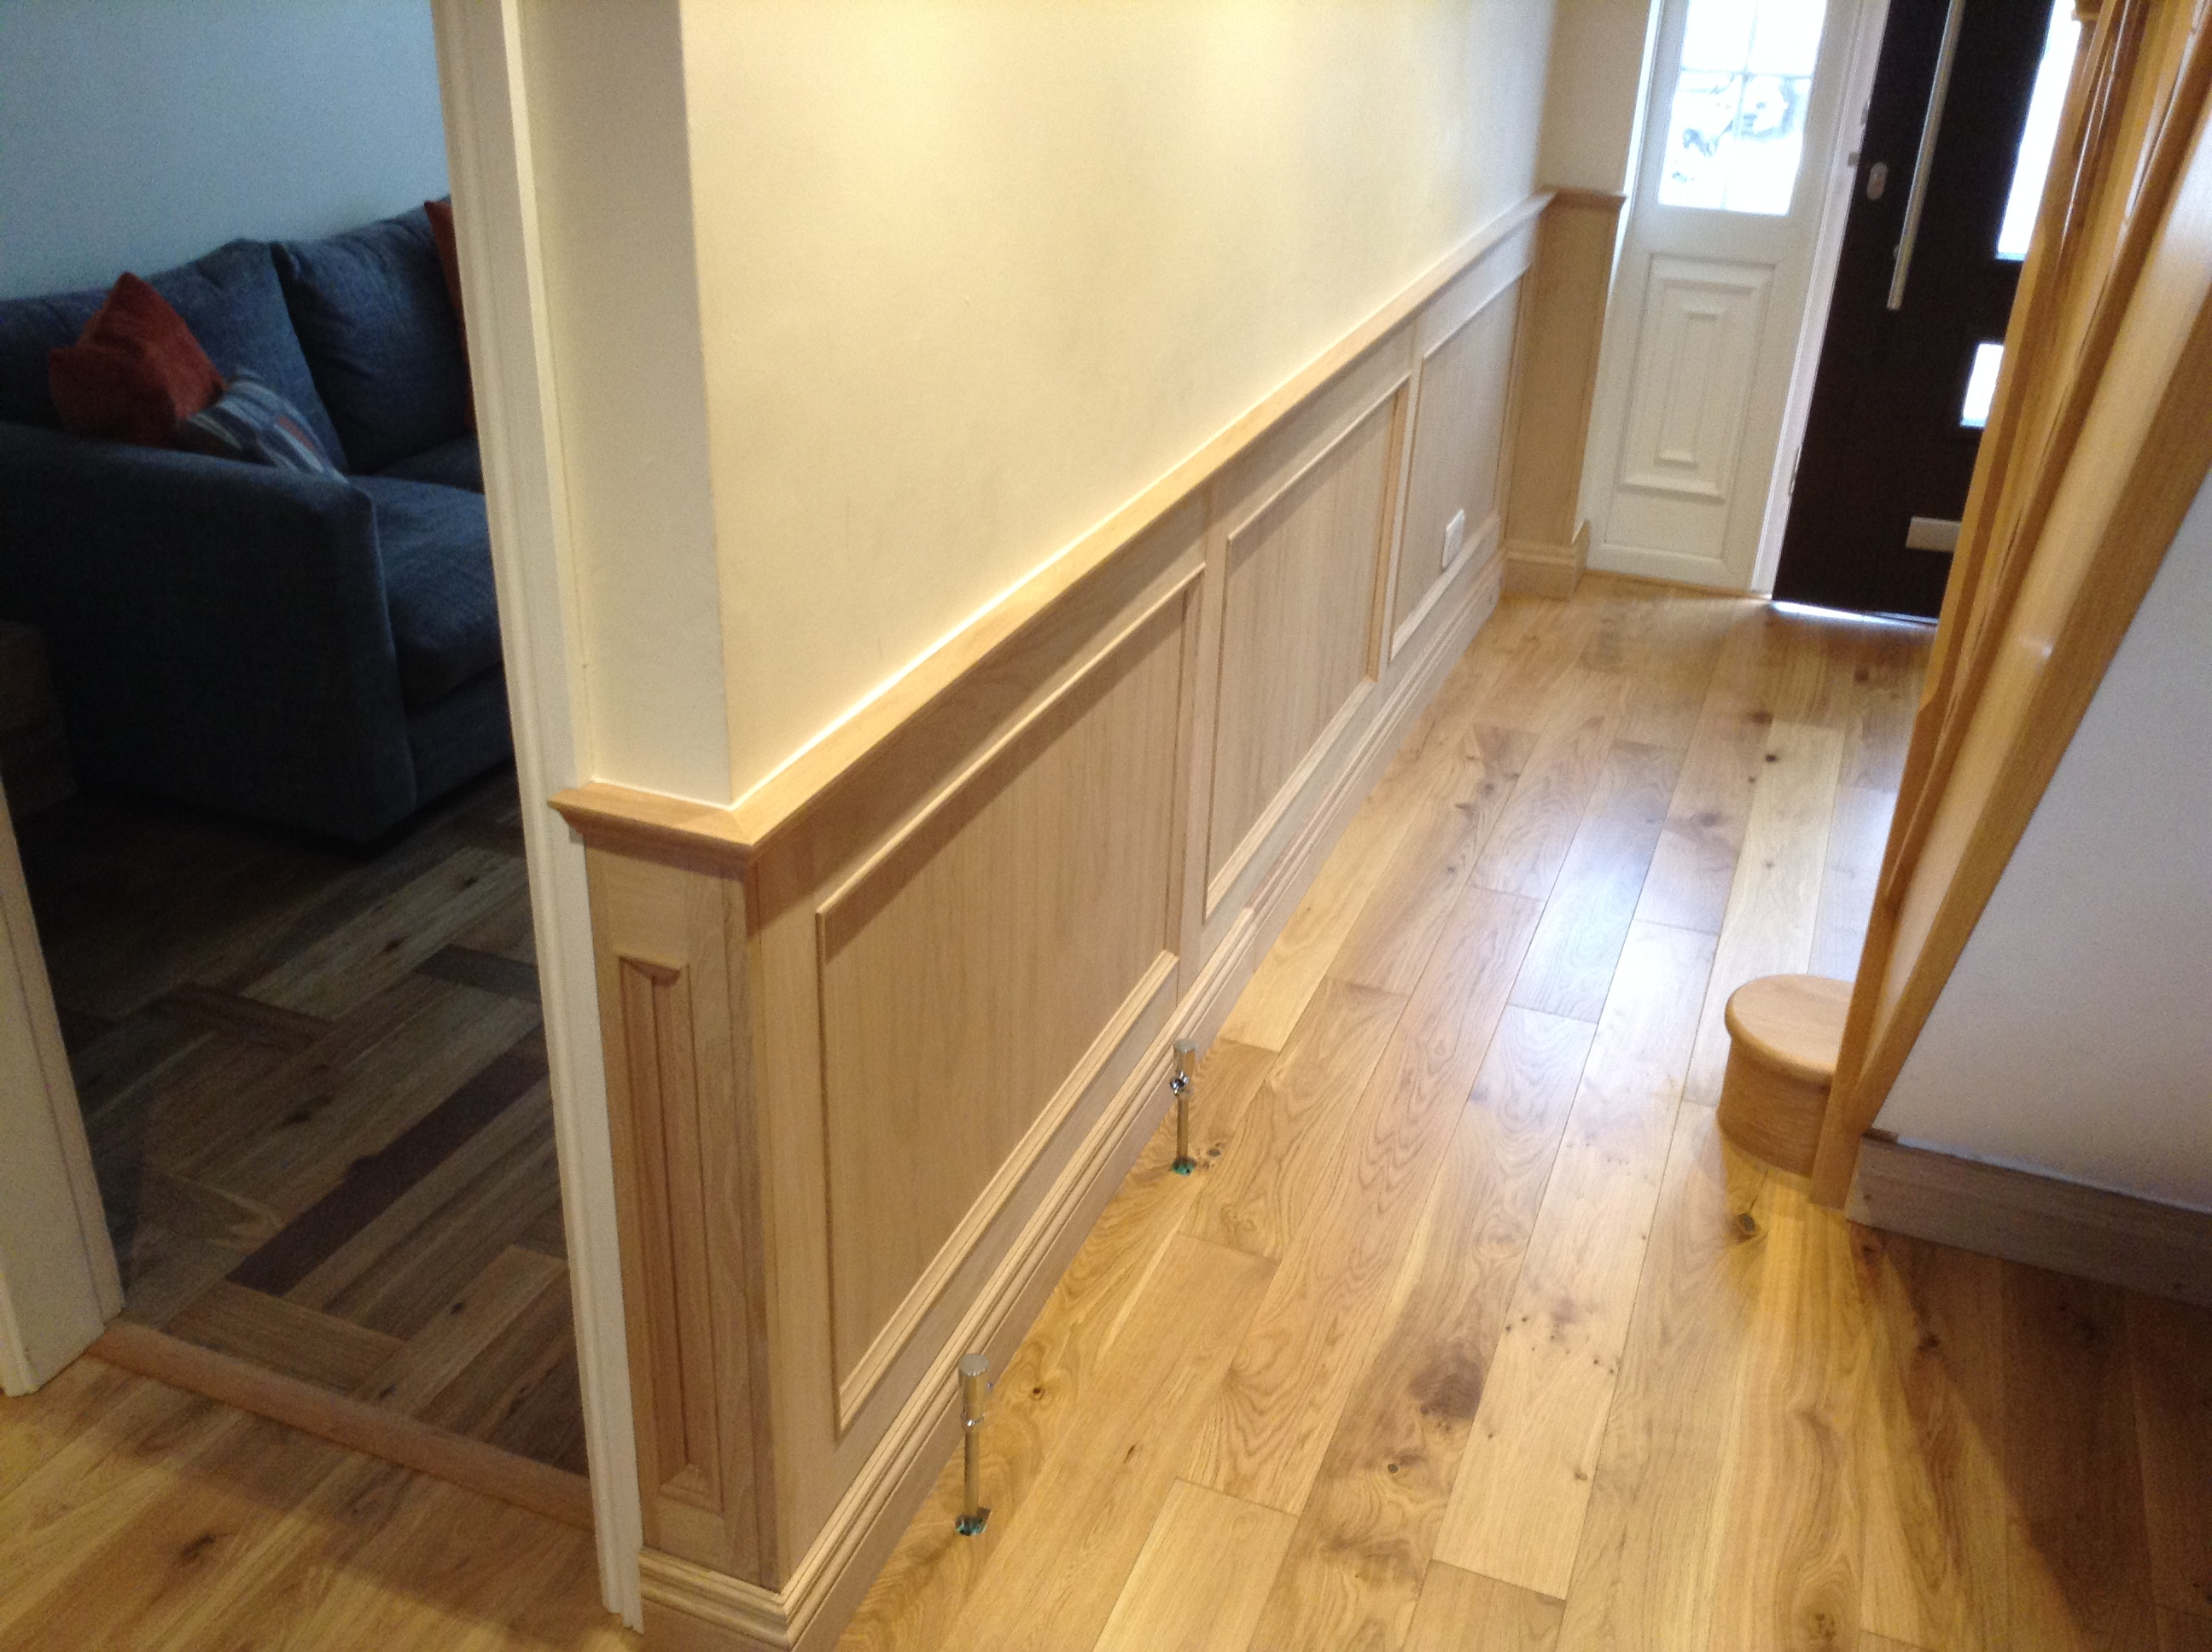 Oak wall panelling decorative wood panelling wall panelling experts Bathroom designs wood paneling